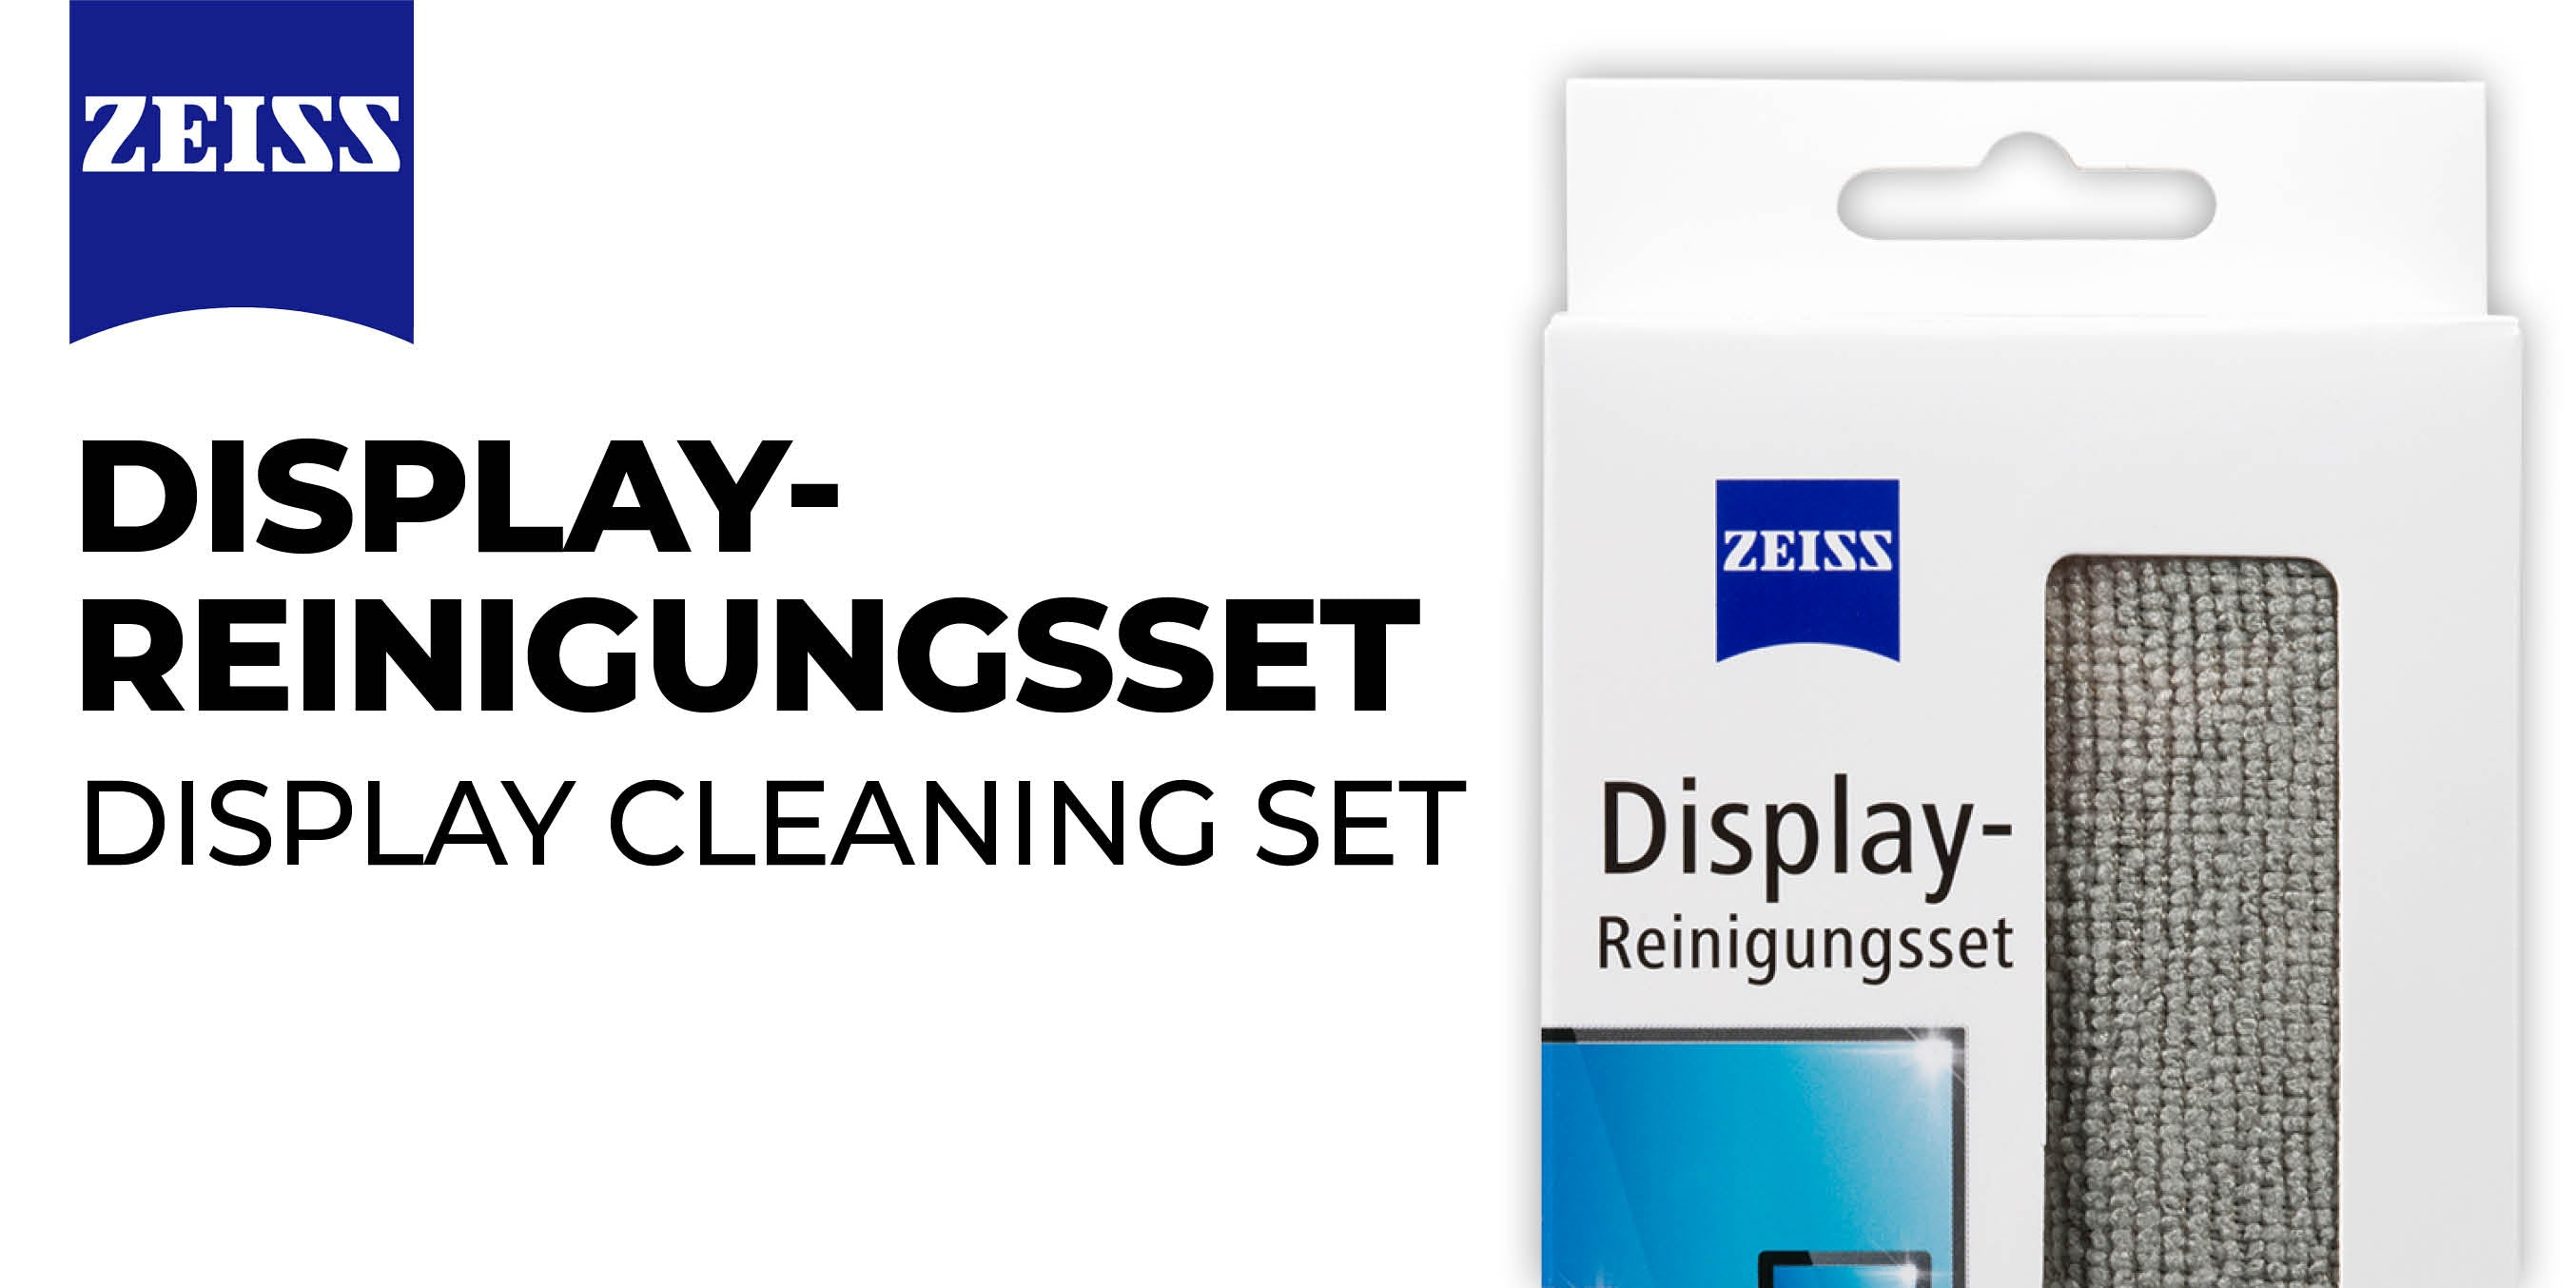 Display Rinigungsset von ZEISS